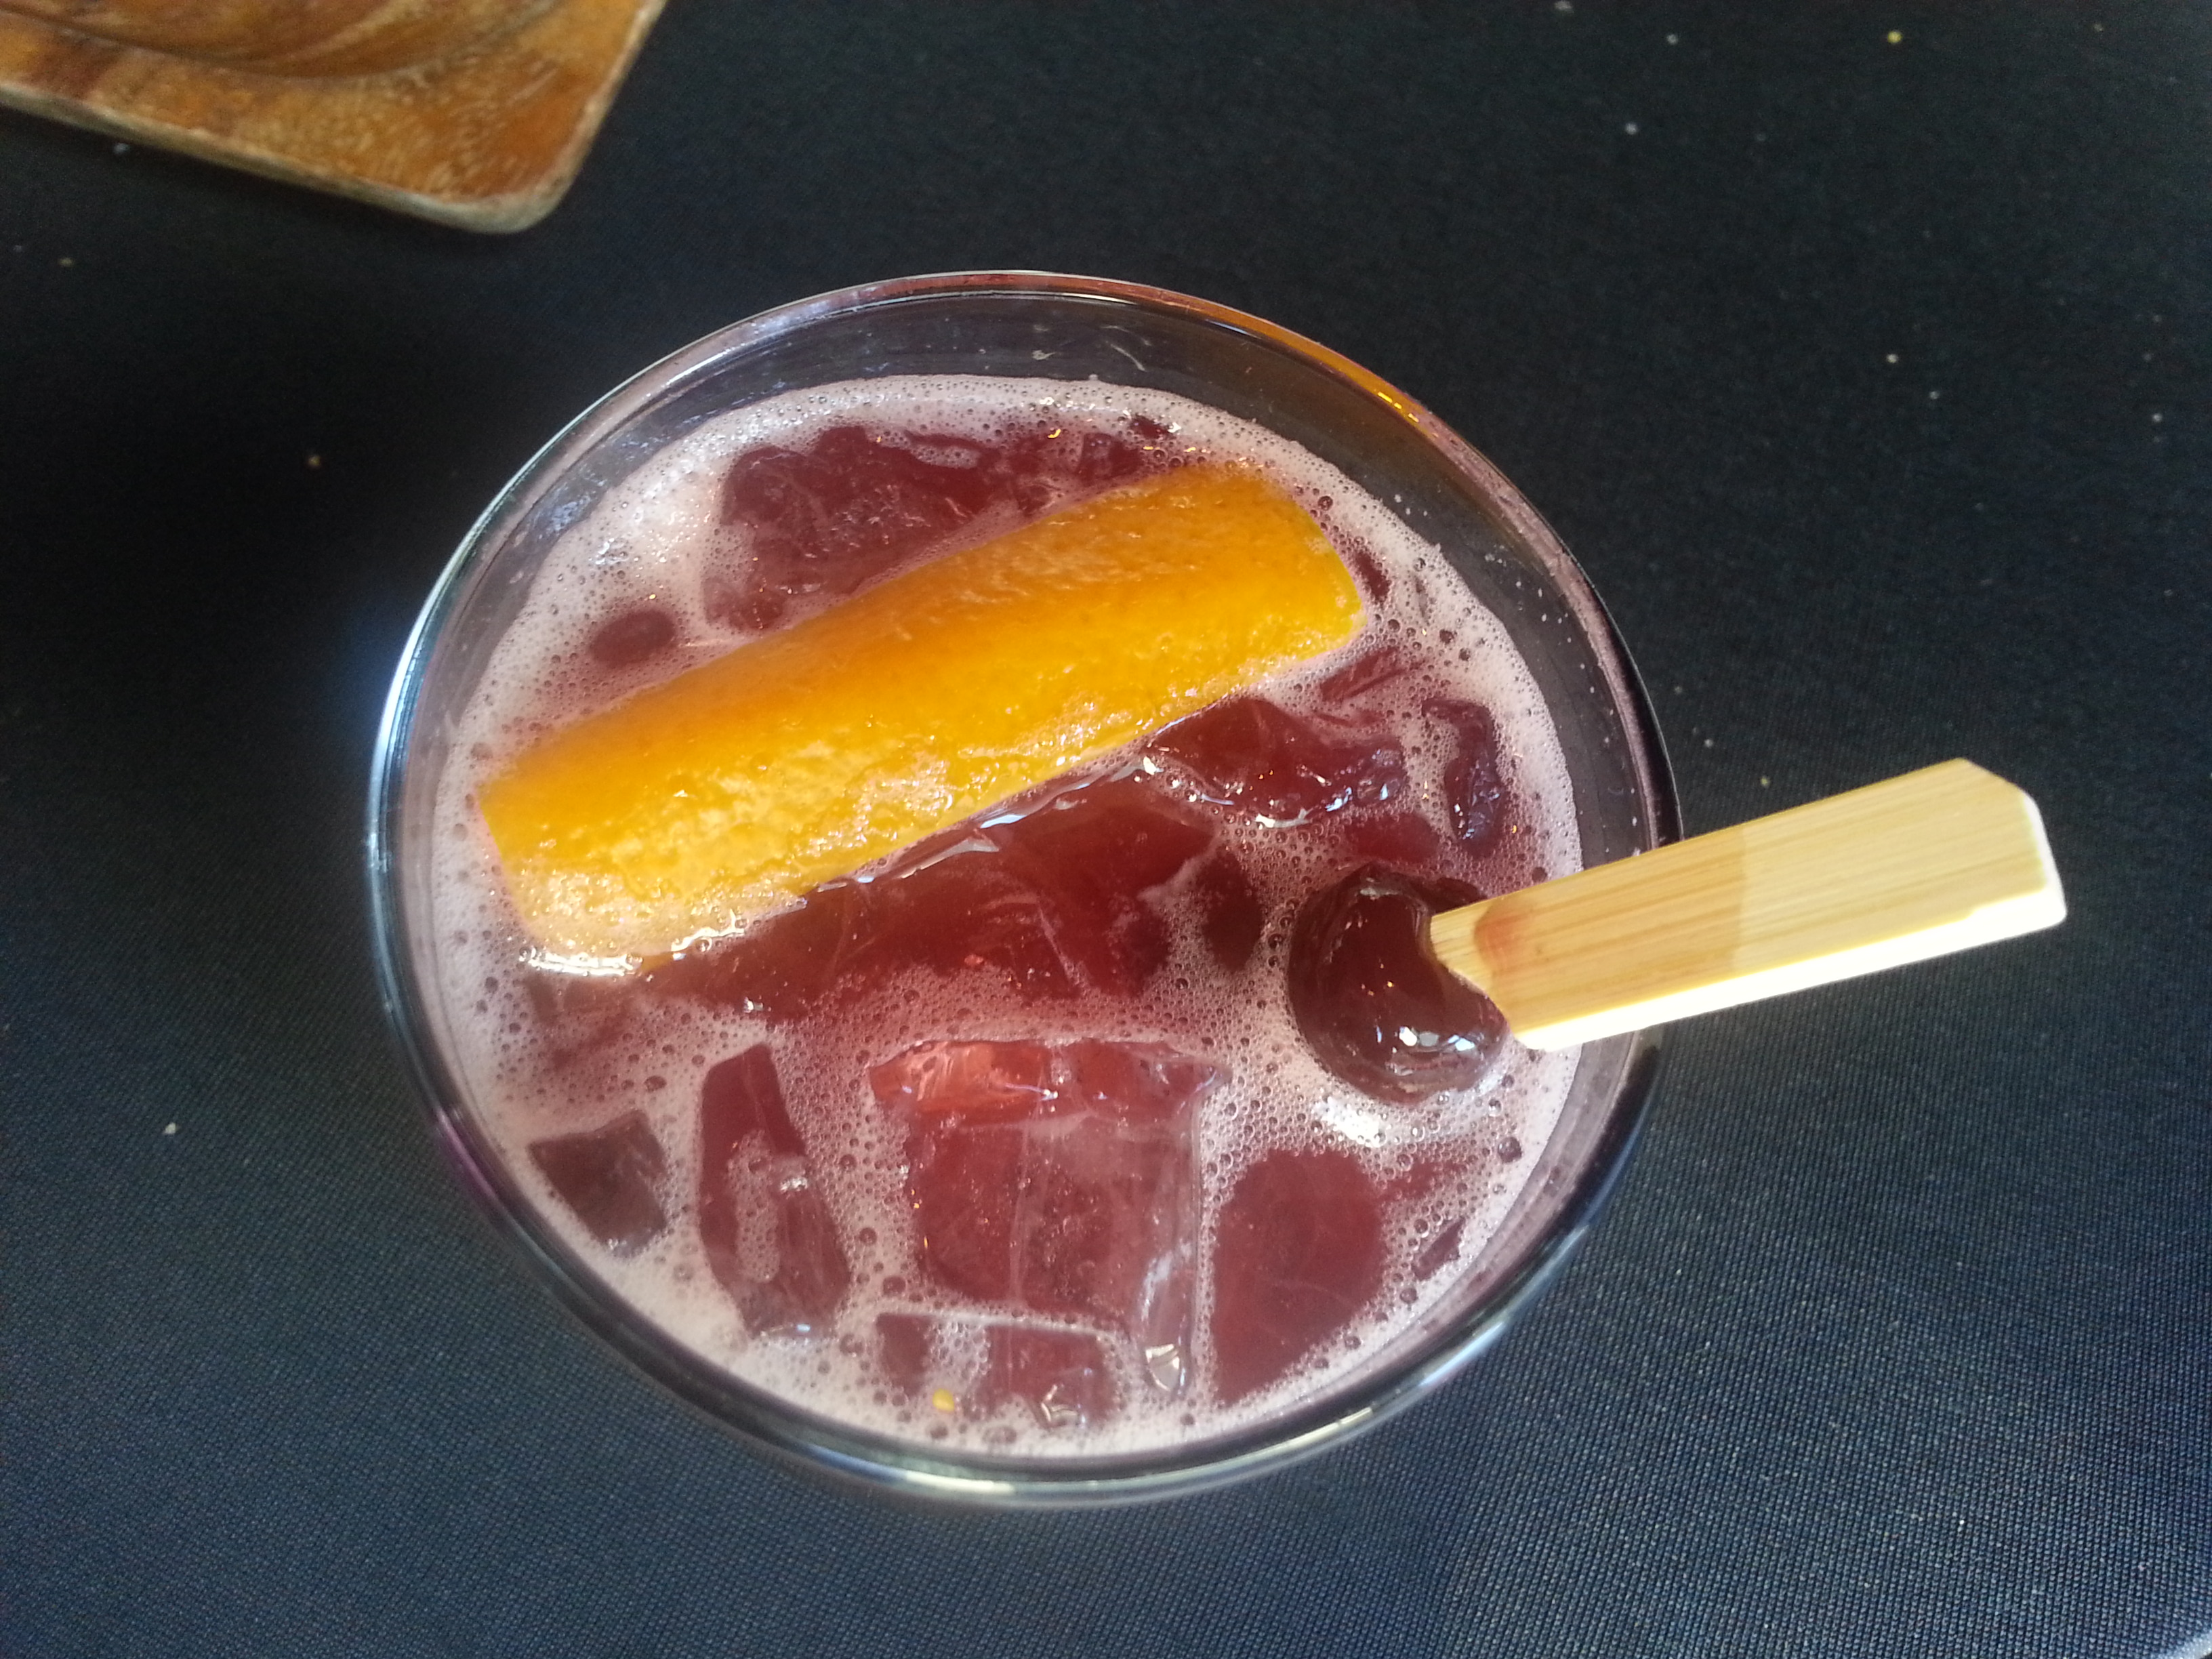 The new bar menu at Charcut is stacked with whimsical drinks that will win you over.  This one is The Cobbler and it is a perfect summer drink.